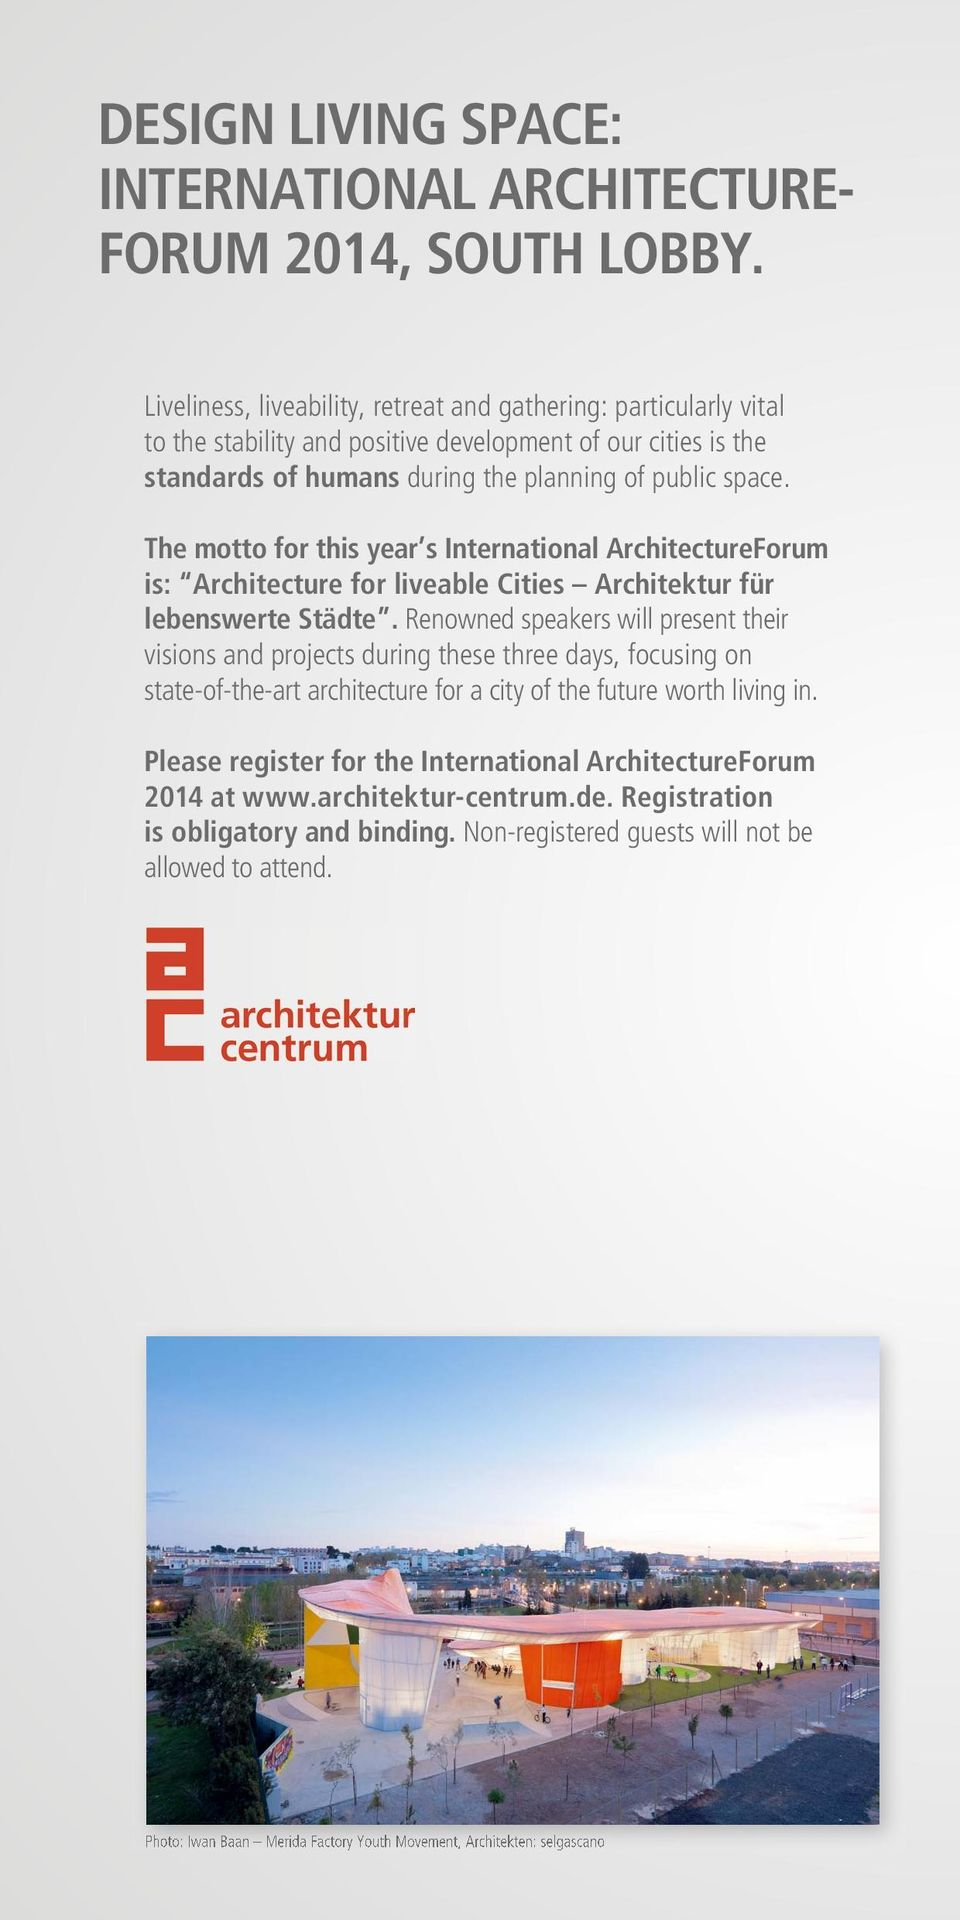 The motto for this year s International ArchitectureForum is: Architecture for liveable Cities Architektur für lebenswerte Städte.